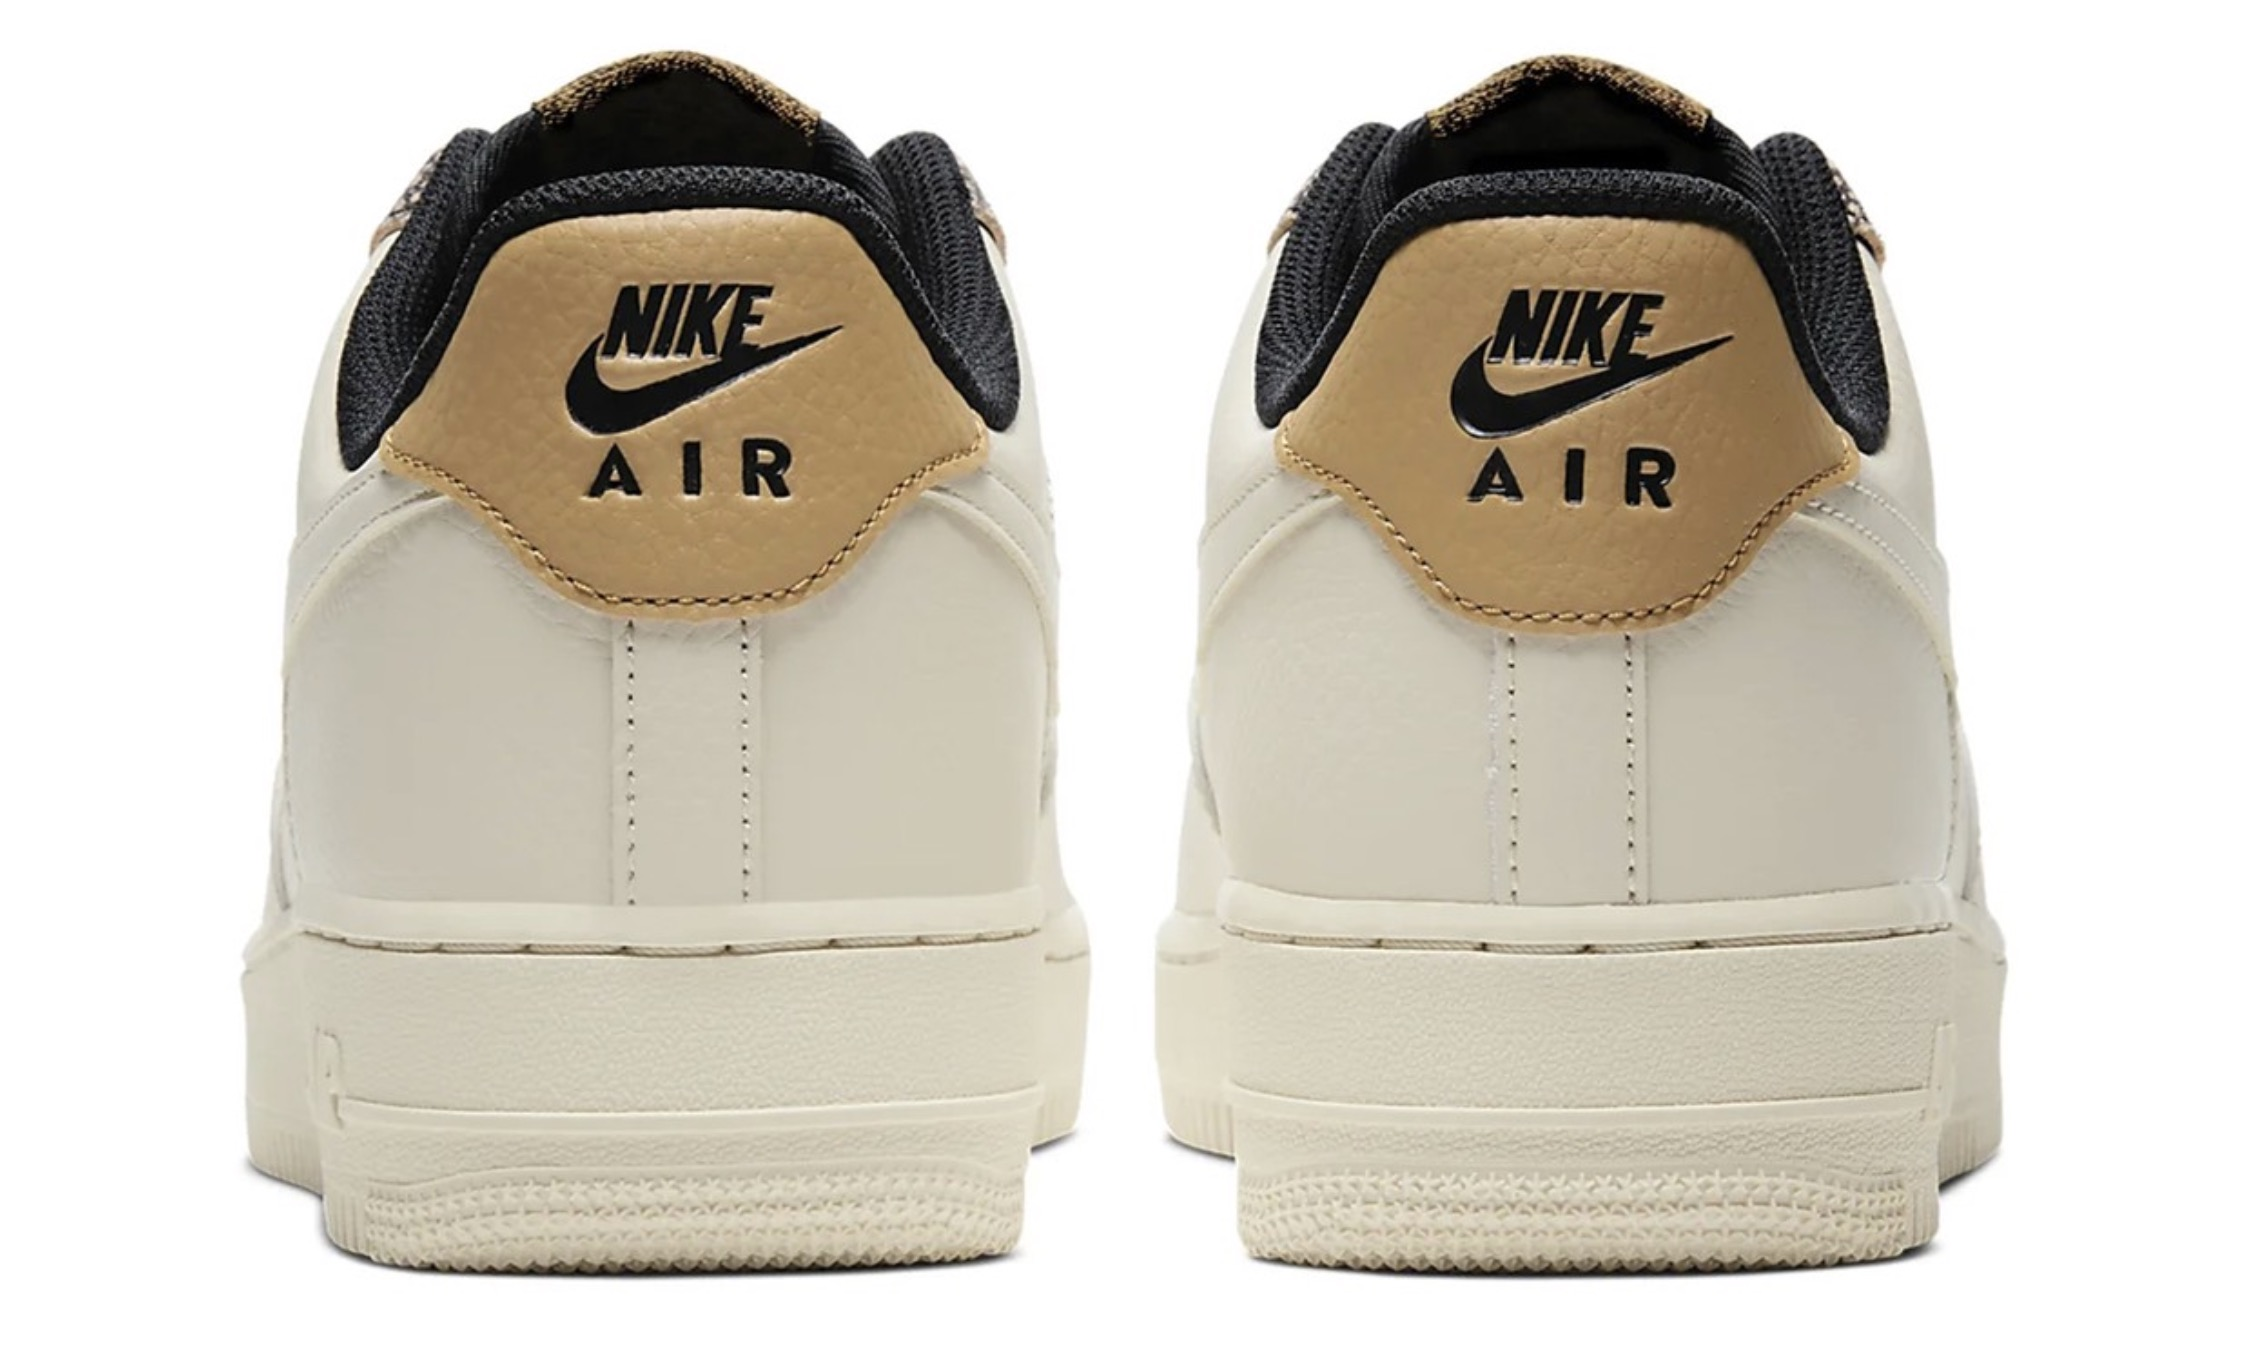 """Nike's Air Force 1 07 in """"Fossil:Wheat:Shimmer"""" 5 heel"""